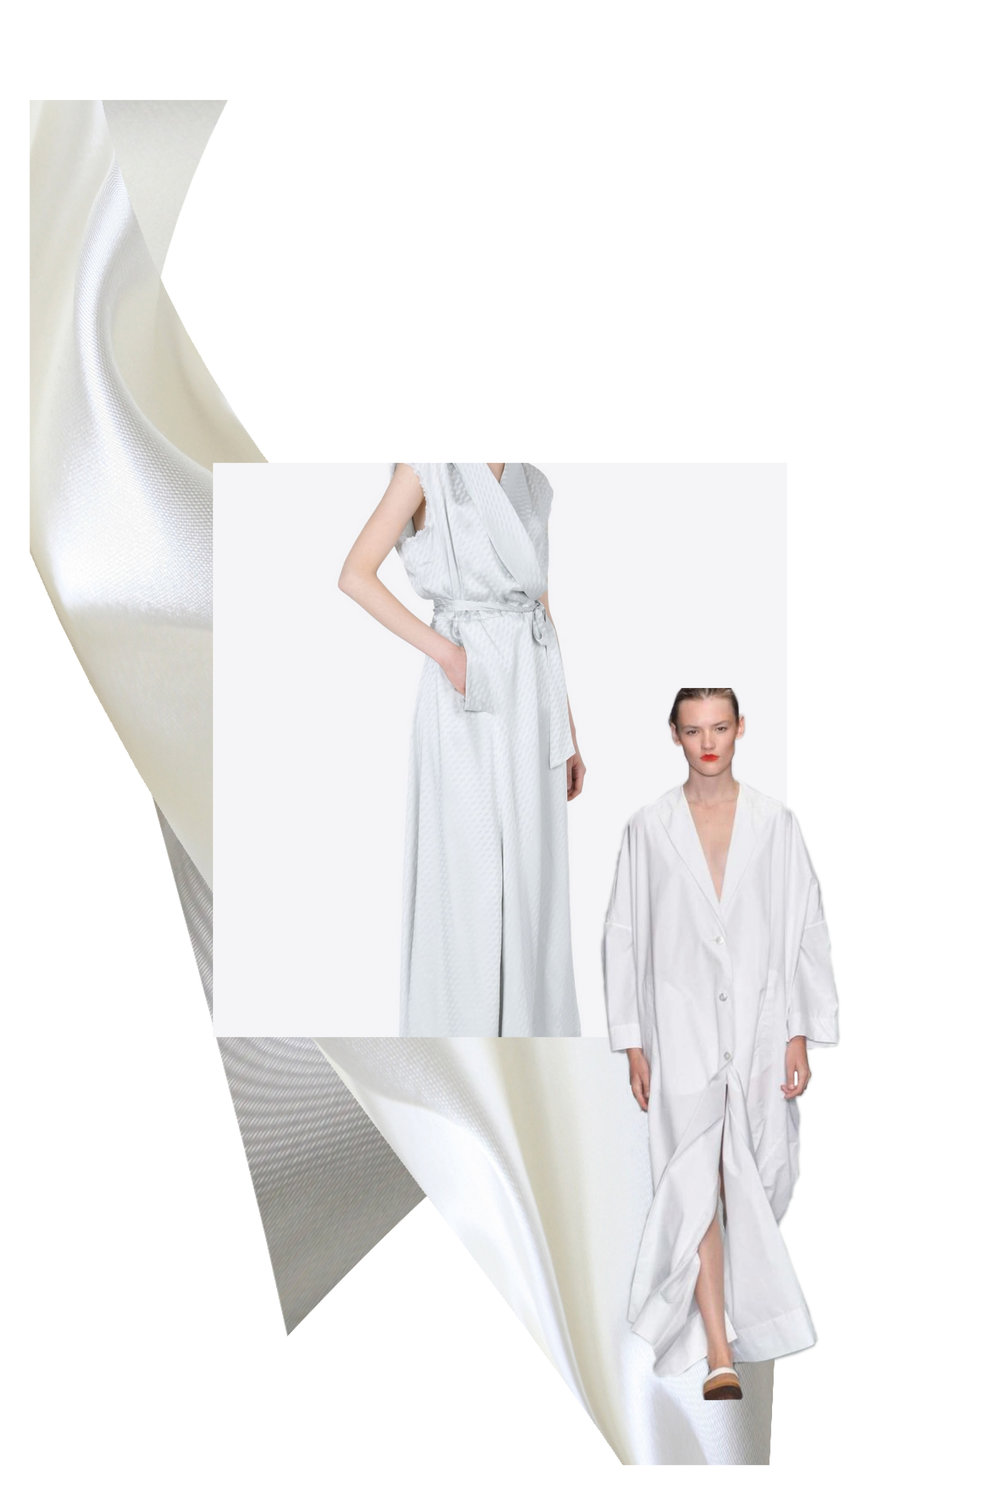 Centre Image:  Maison Margiela-  Silk Wrap Dress   Cut Out Image:  Eudon Choi Spring 15 via  style.com